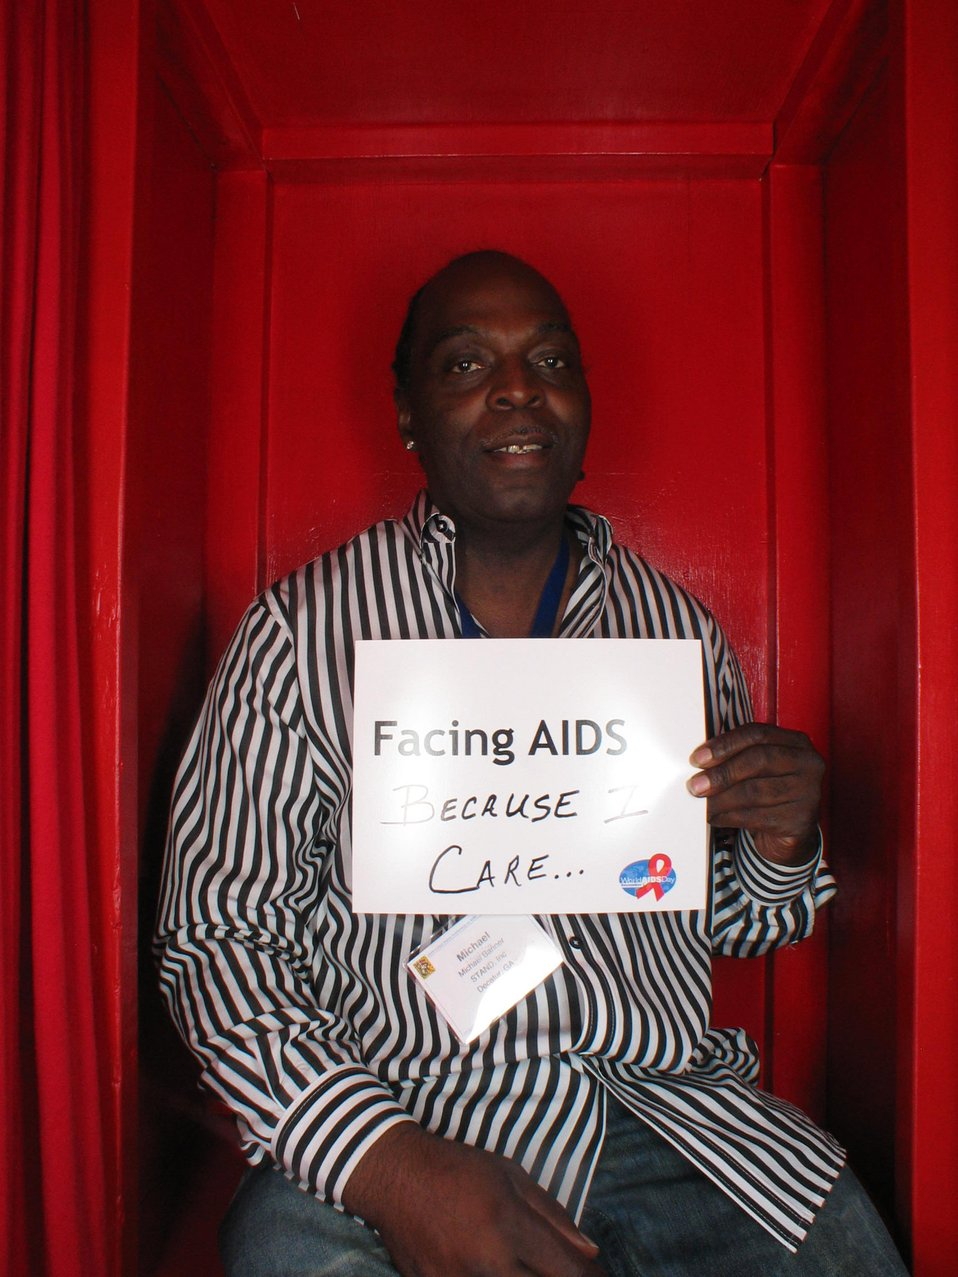 Facing AIDS because I care...